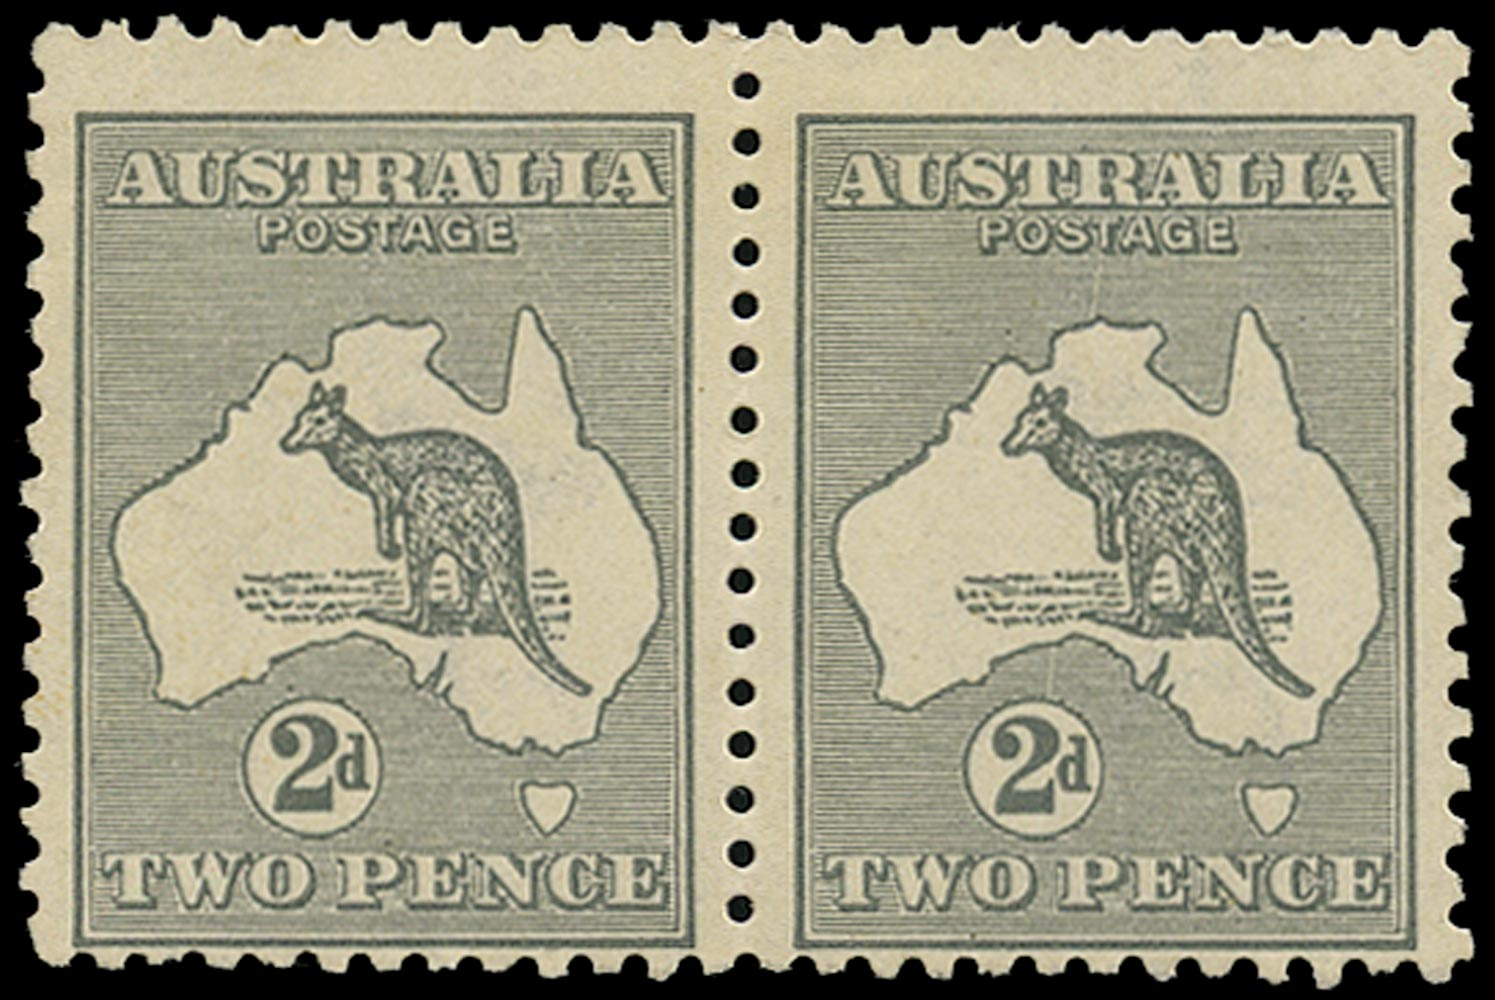 AUSTRALIA 1915  SG35 var Mint 2d grey Kangaroo and Map die I wmk 6 variety Scratch from value circle through map to T of POSTAGE